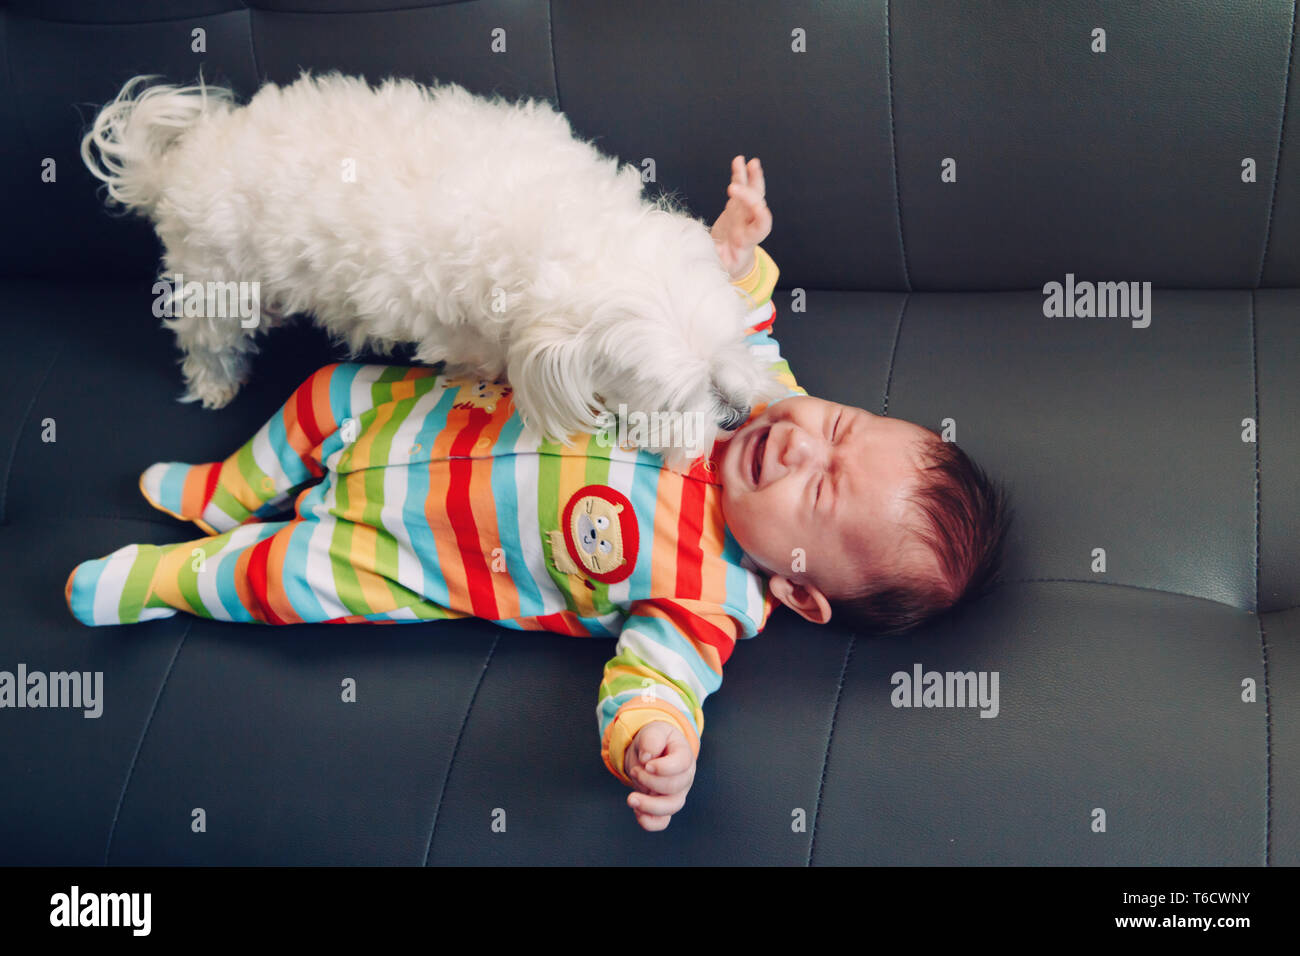 Crying screaming Caucasian baby girl boy lying on bed couch with white dog by his side. Natural emotion expression. Candid childhood lifestyle. Relati - Stock Image